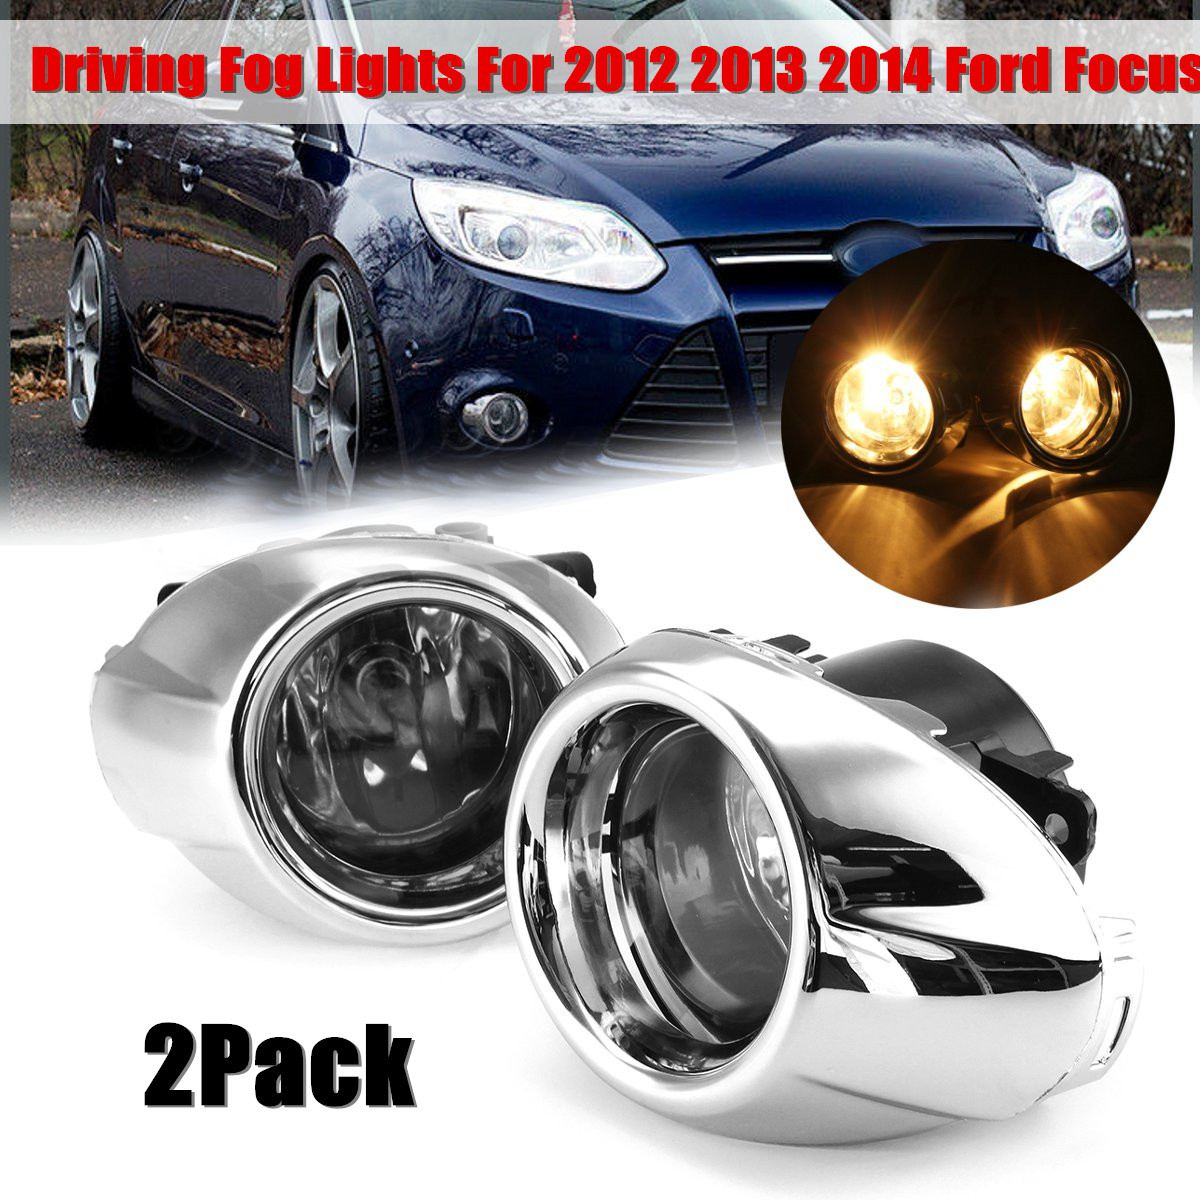 1 Pair Replacement Clear Lens Fog <font><b>Lights</b></font> Lamps Bulbs For <font><b>2012</b></font> 2013 2014 <font><b>Ford</b></font>-<font><b>Focus</b></font> S/SE/SEL/Titanium image